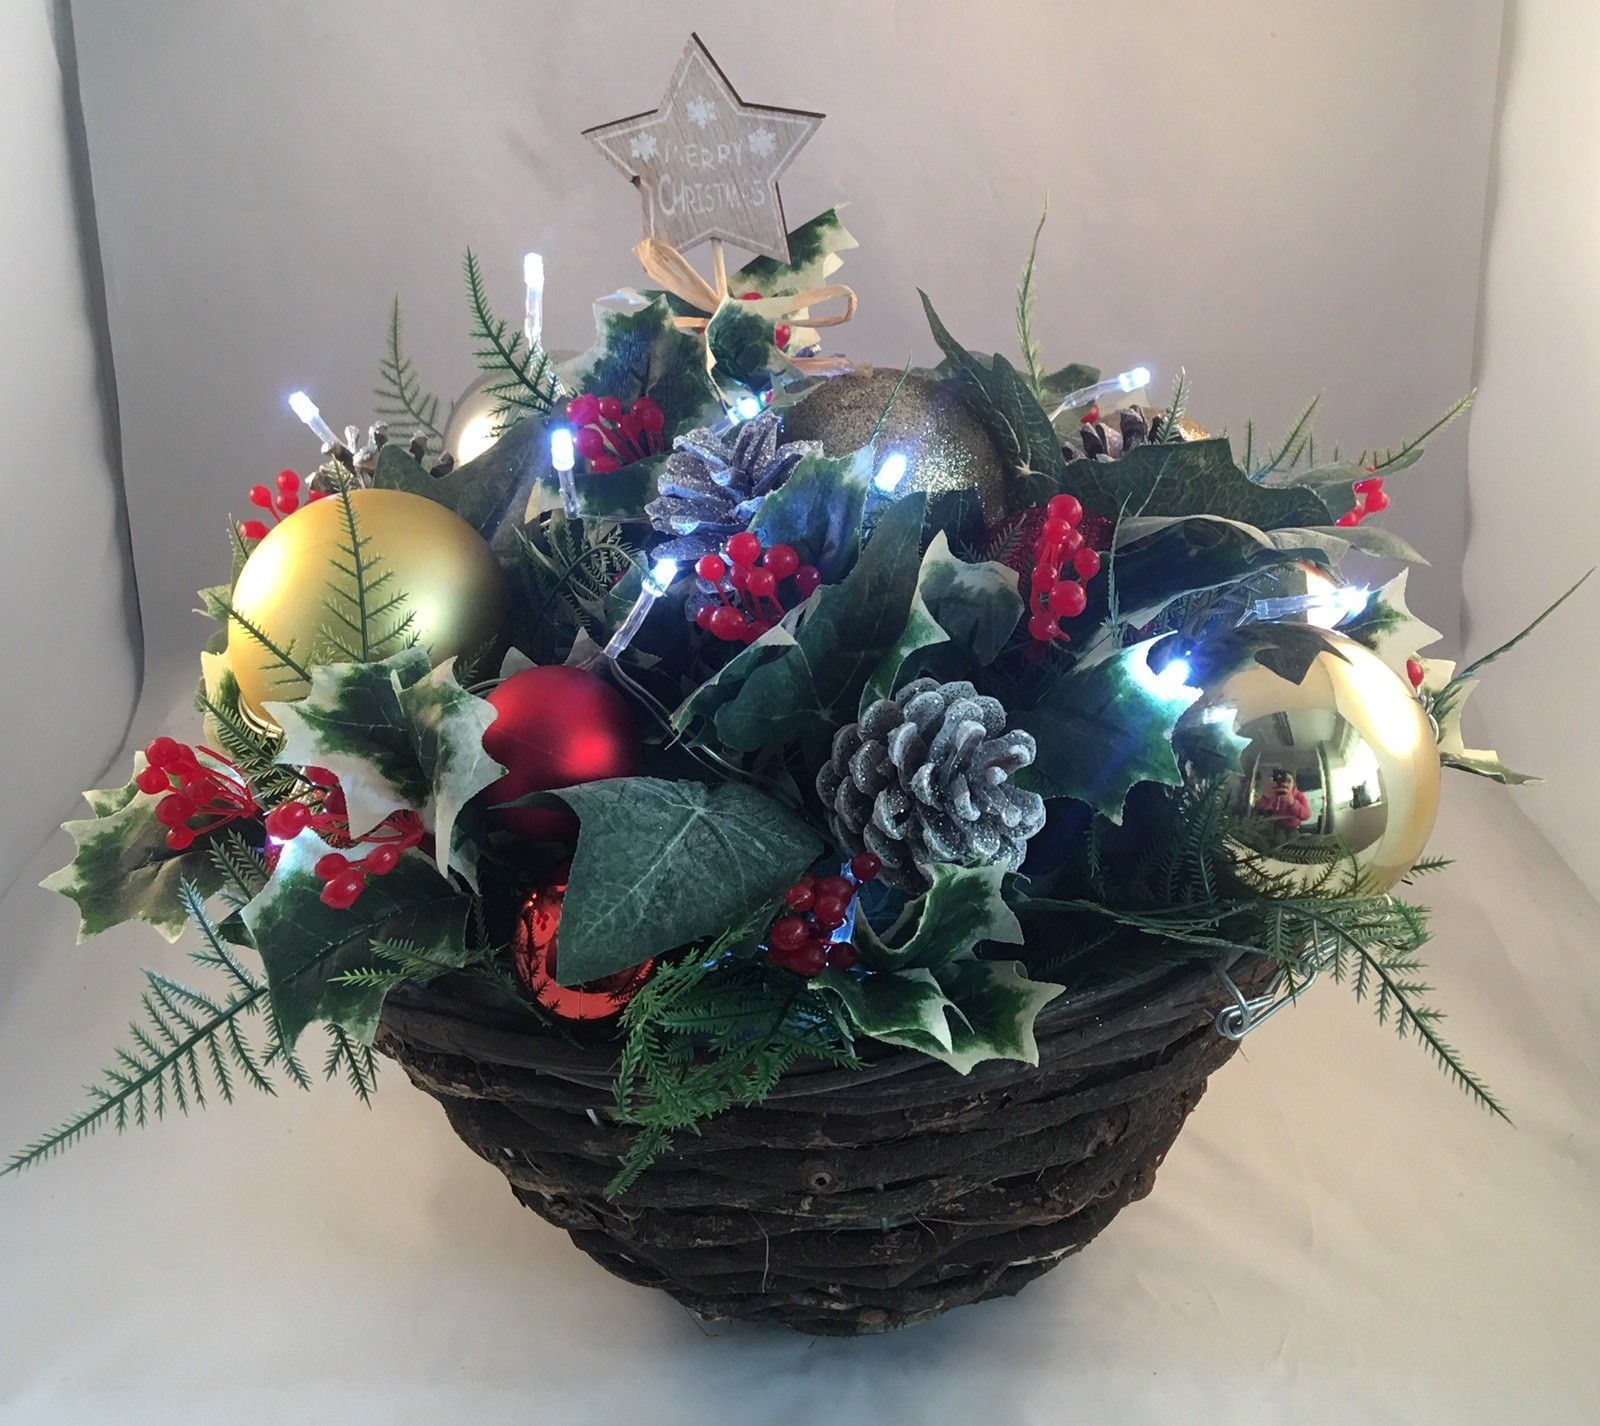 Christmas Hanging Baskets With Lights.Christmas Garden Hanging Basket Artificial Greenery Baubles